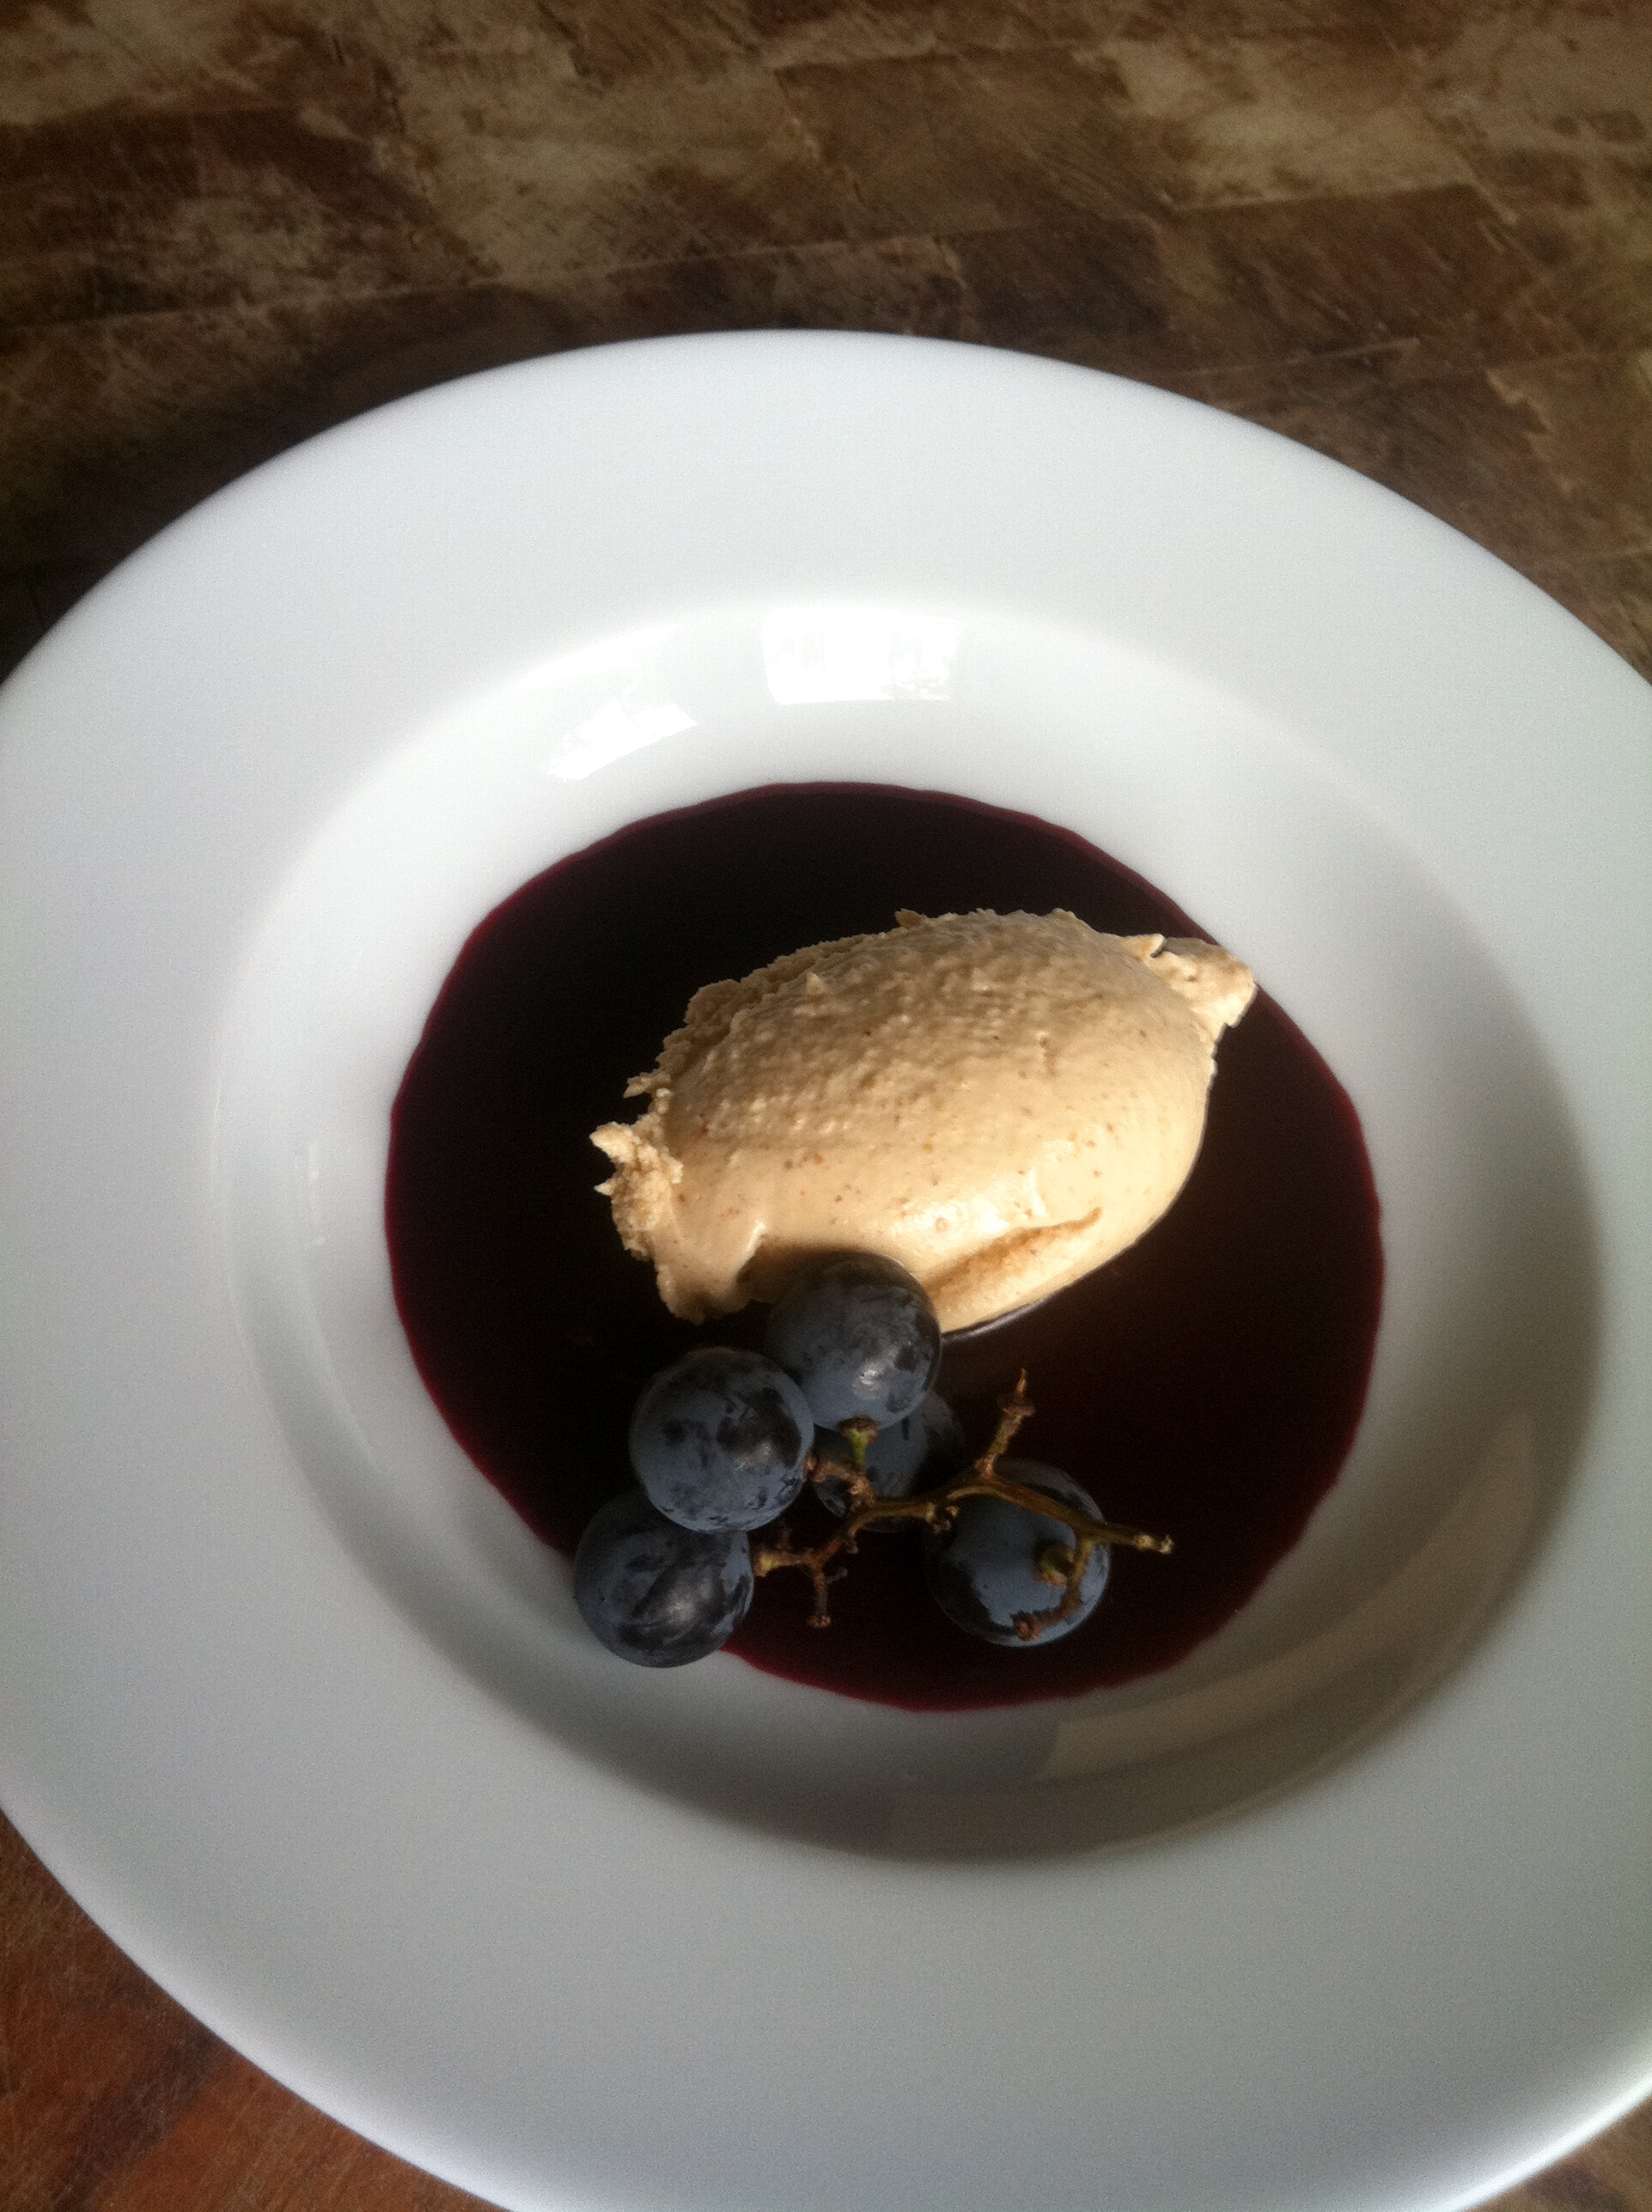 Peanut Butter Ice Cream with Concord Grape Coulis